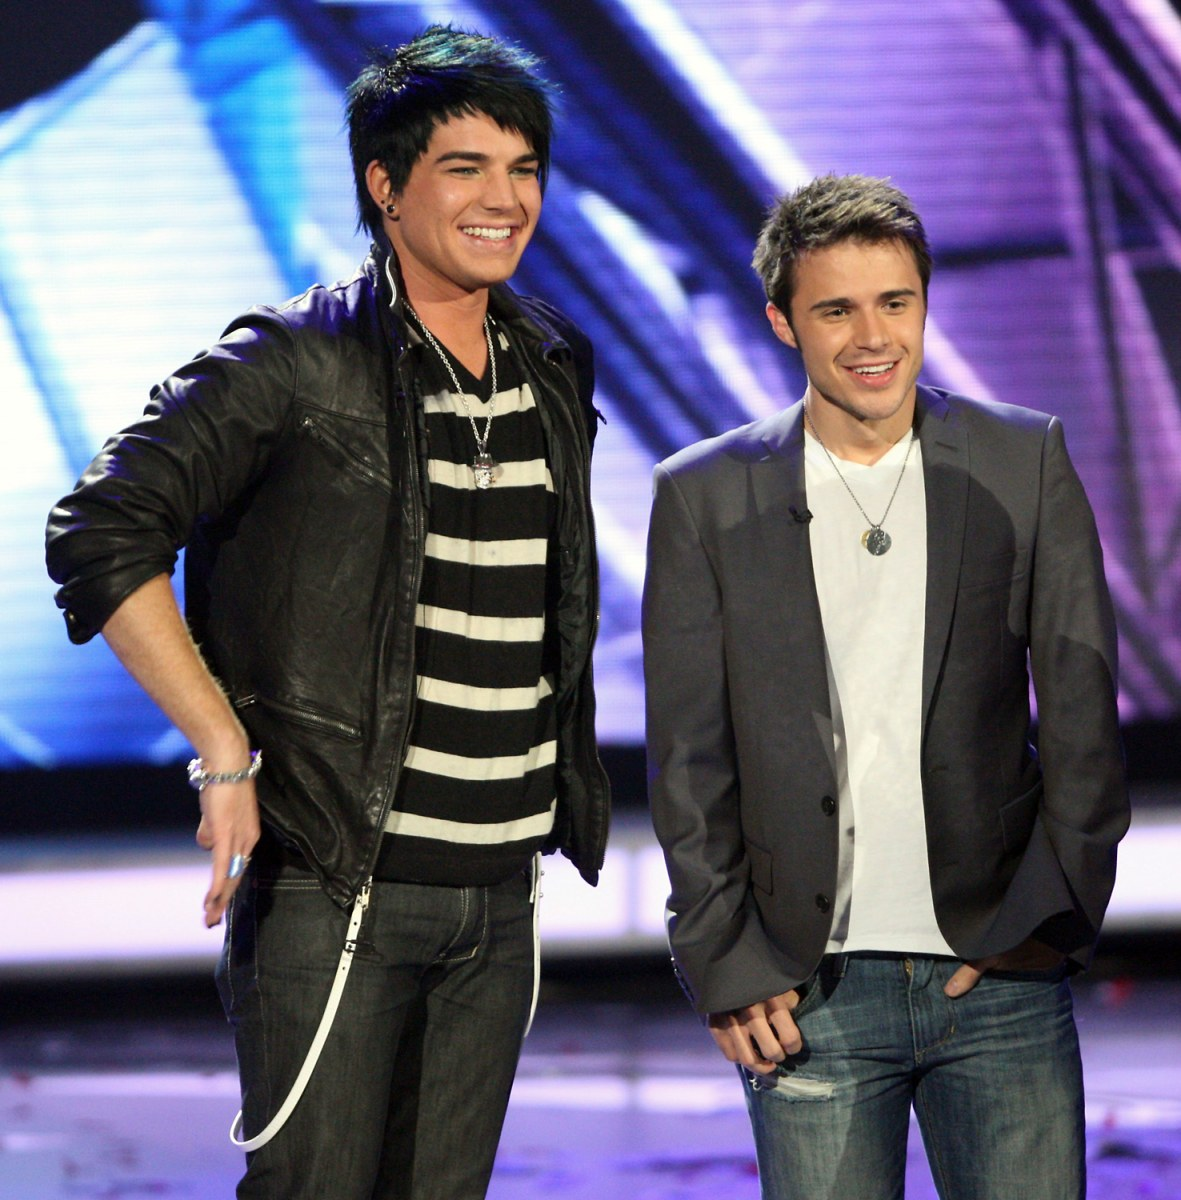 American Idol Season 8 Top 3 Elimination Show